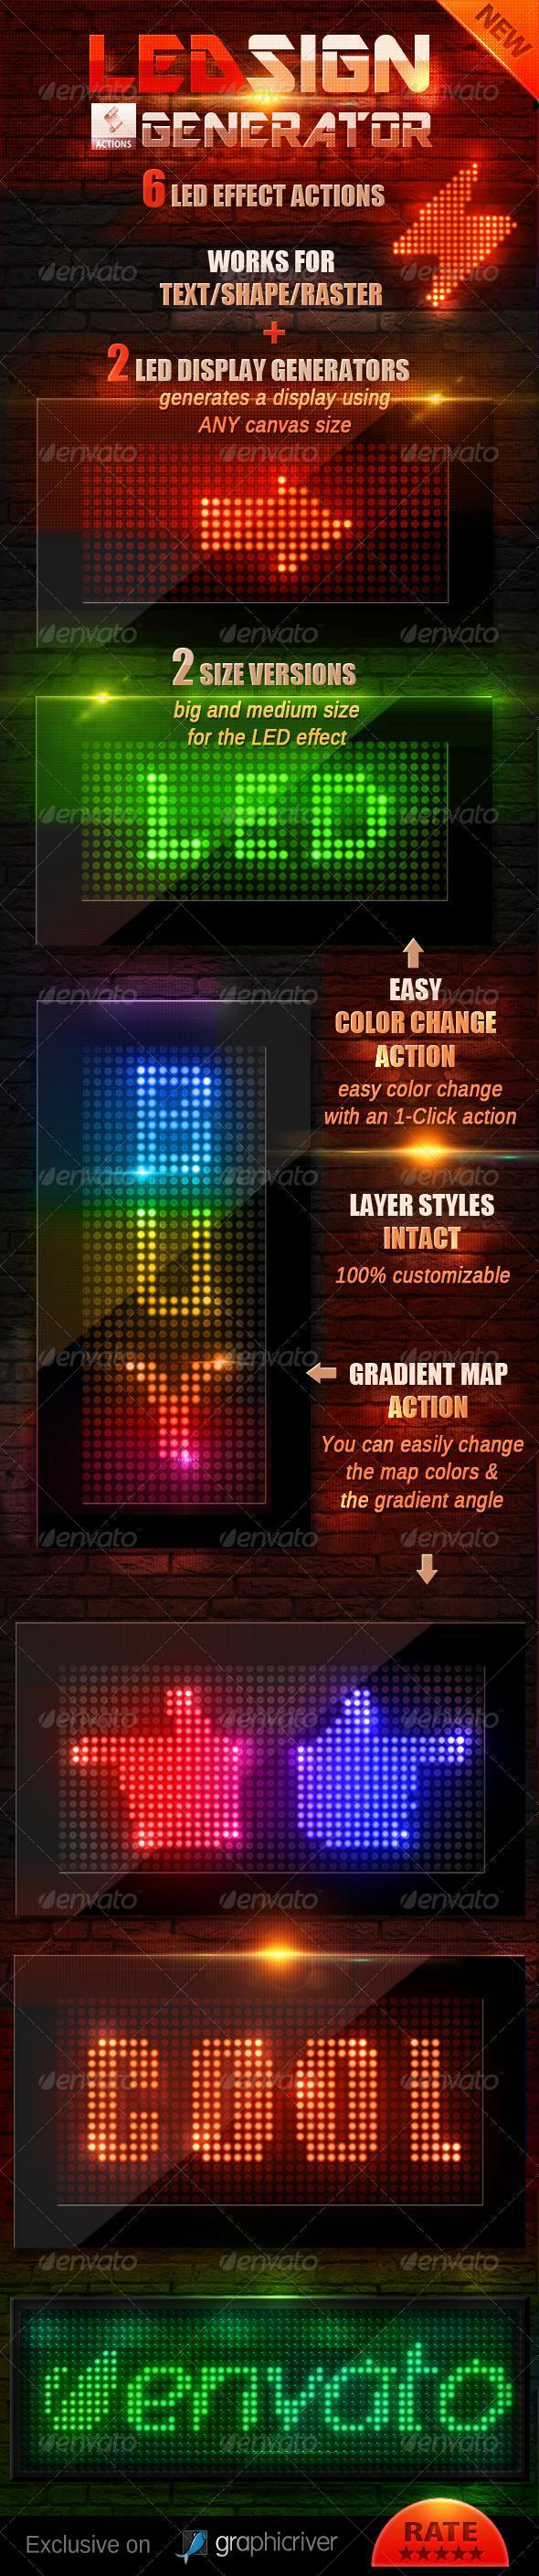 Led Light Photoshop Text and Shape Generator